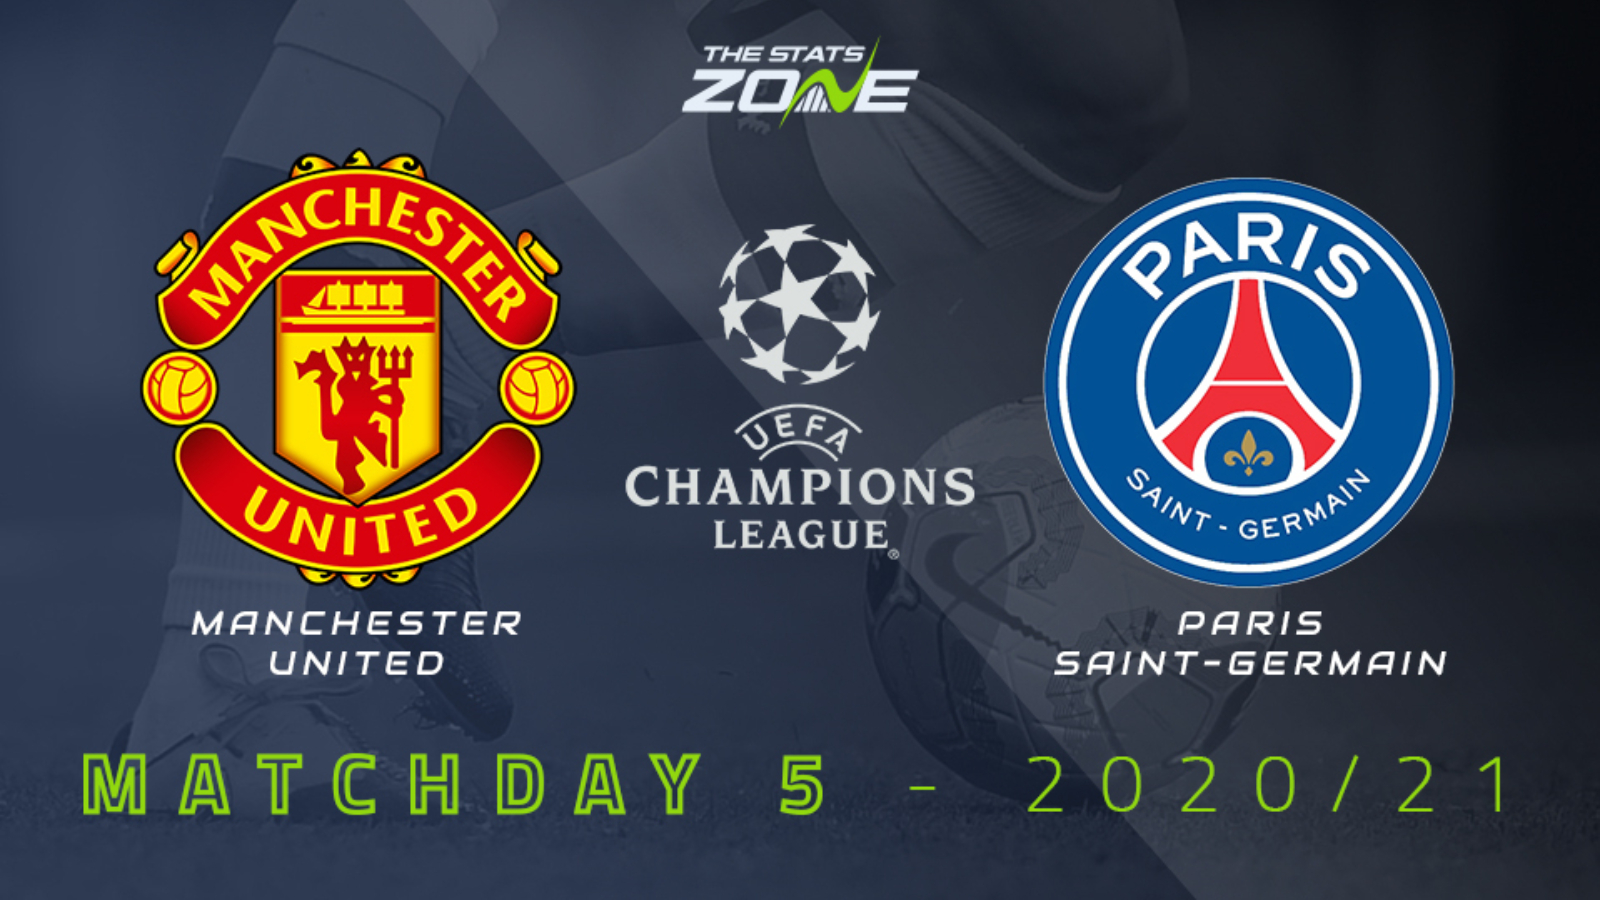 2020 21 Uefa Champions League Man Utd Vs Psg Preview Prediction The Stats Zone